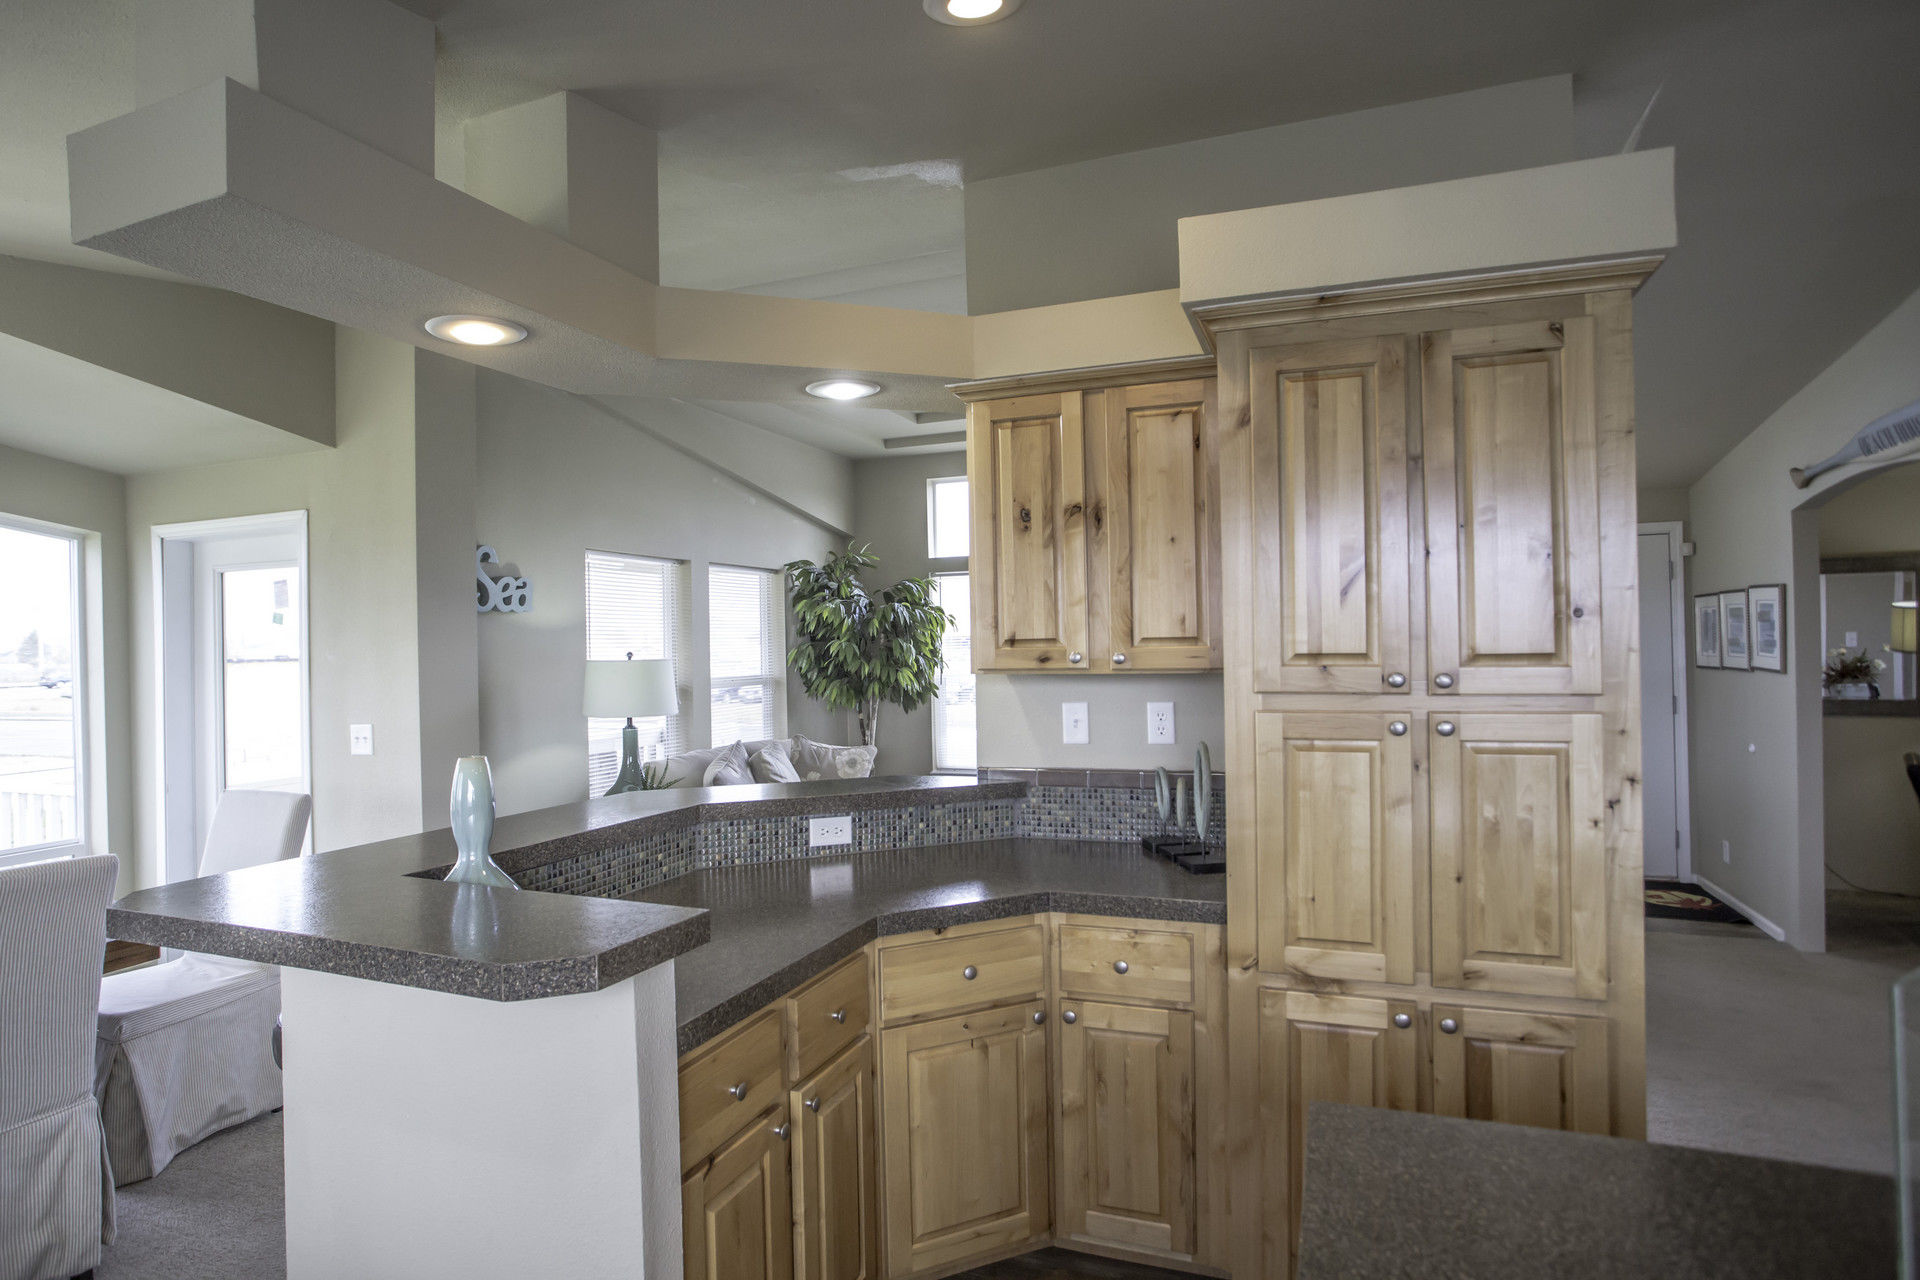 Modular Homes Arizona >> The Sunset Bay 3 bed / 2 bath / 1500 sqft affordable home for $78900 | Model 4P56S52 from Homes ...